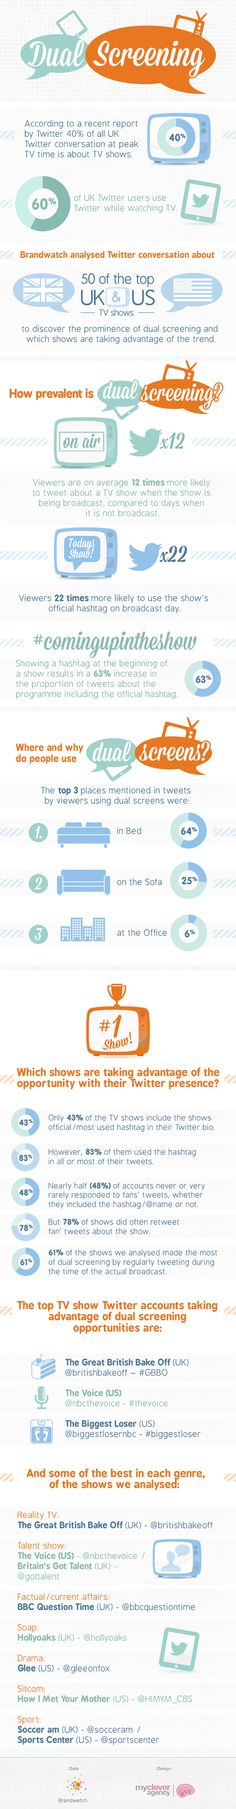 #SocialTV Research: Is #Twitter Transforming How we Watch TV? [INFOGRAPHIC] via Brandwatch